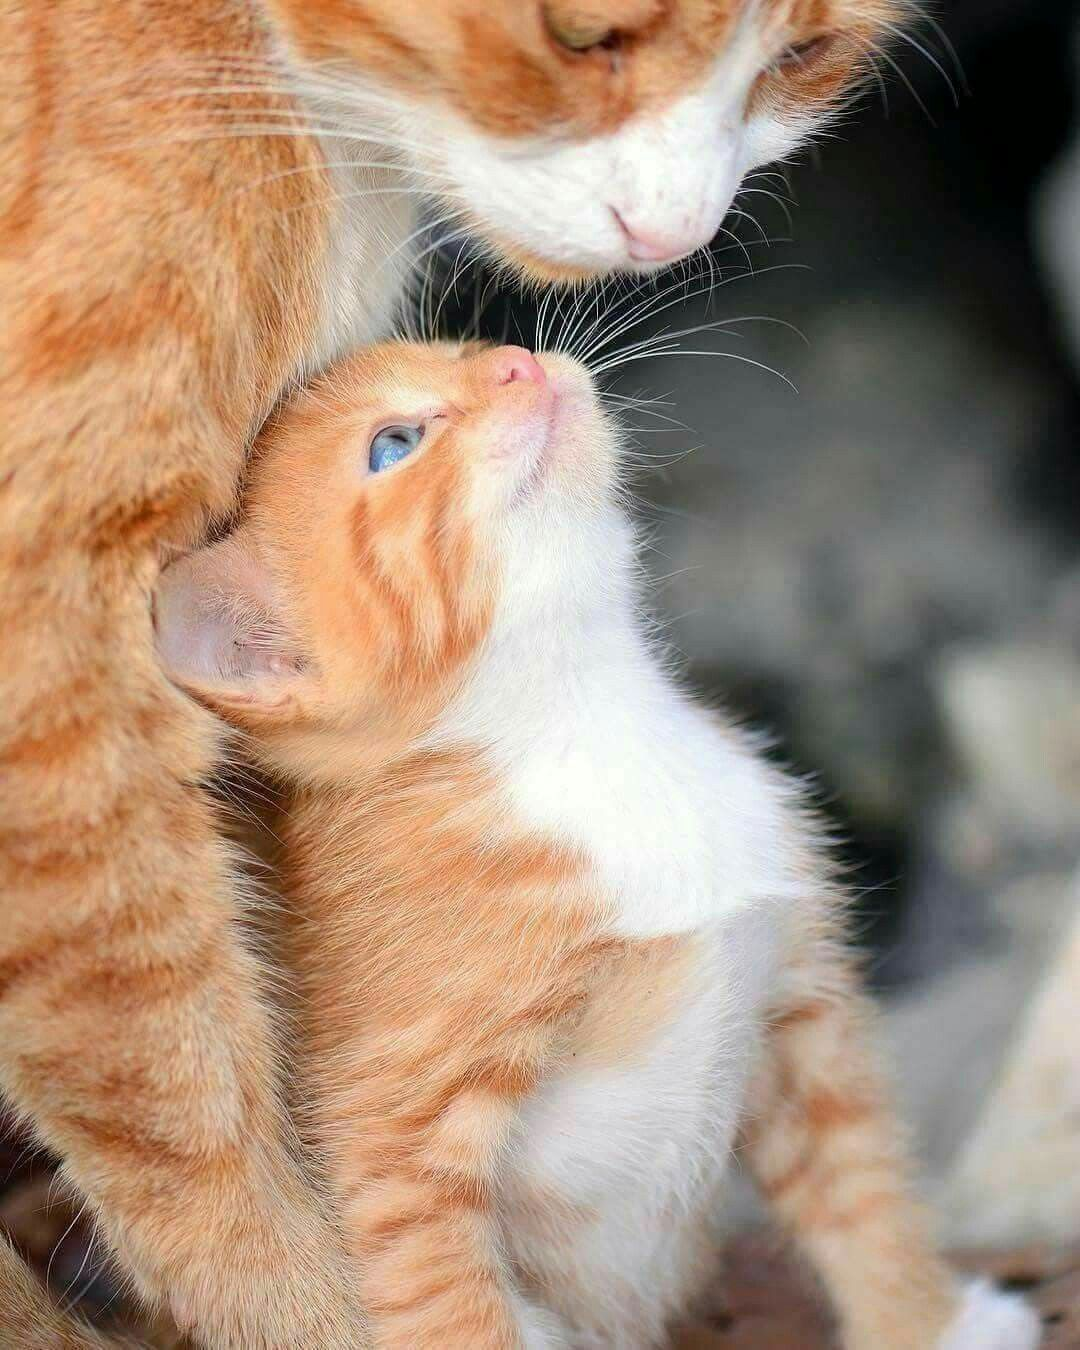 I Wish All Kitty Families Could Stay Together Kittens Cutest